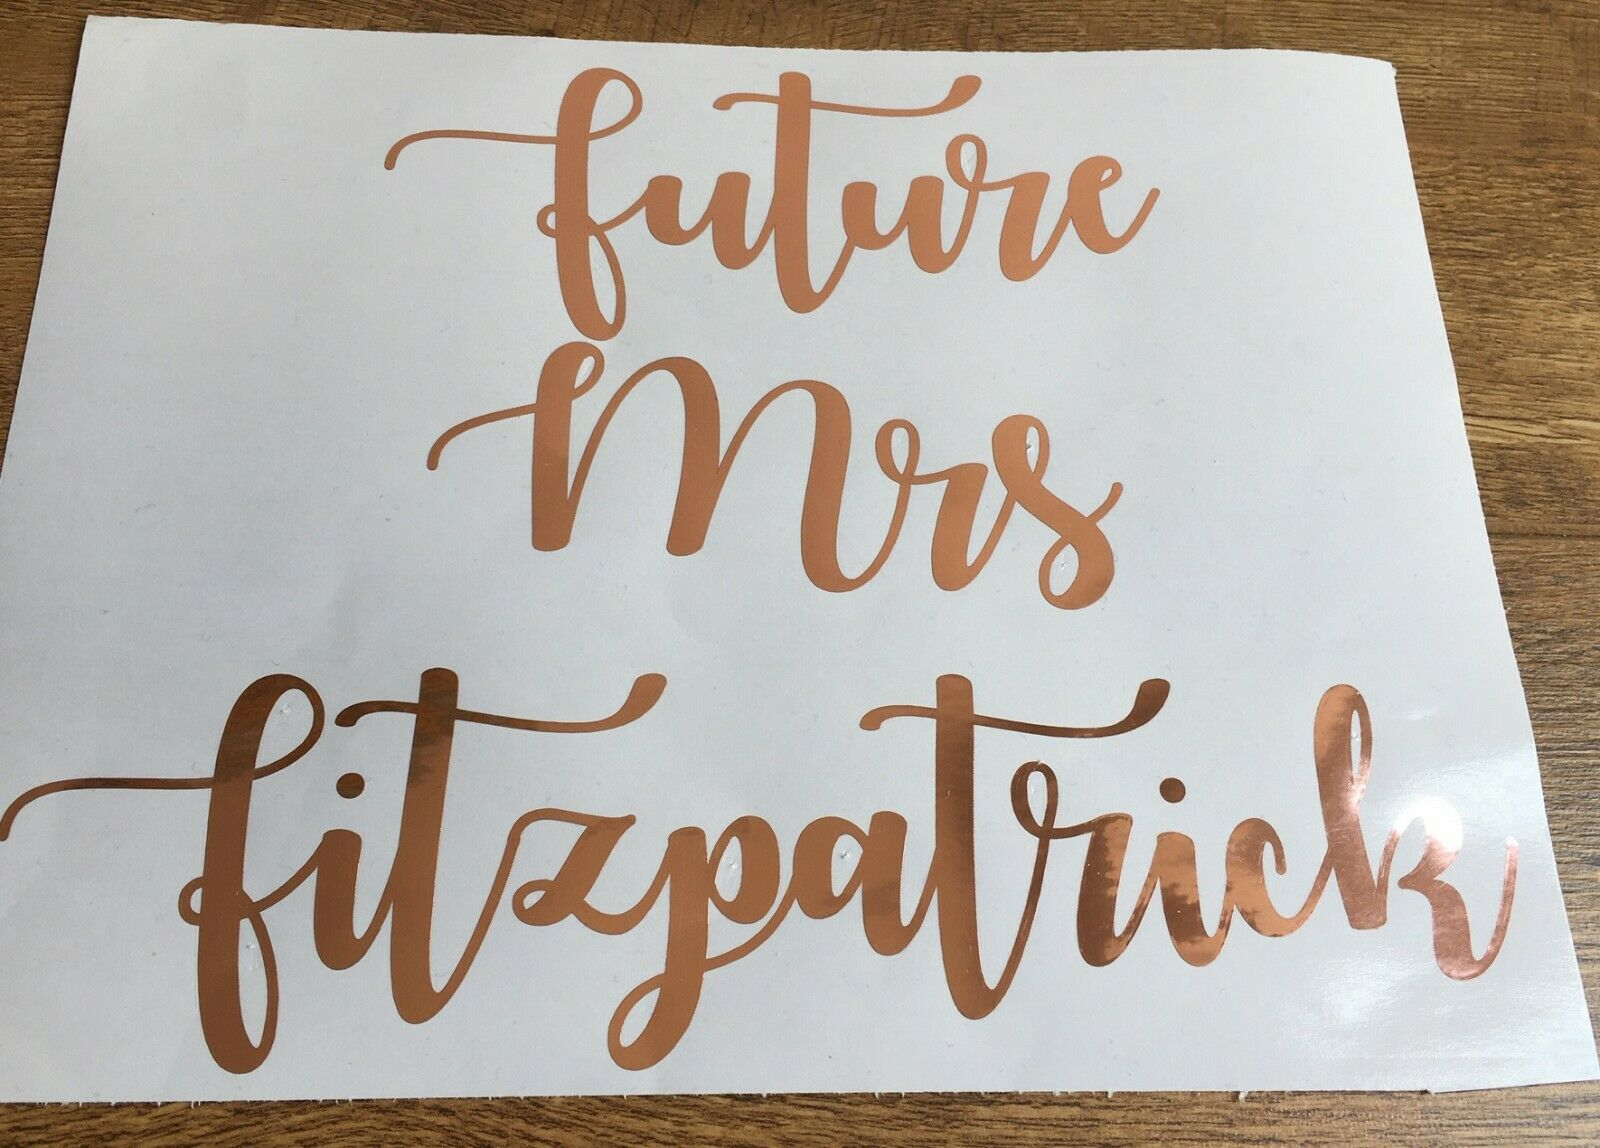 Rose Gold Vinyl Stickers, Chrome, Shiny Labels, Decals Storage, House, Mrs Hinch 4